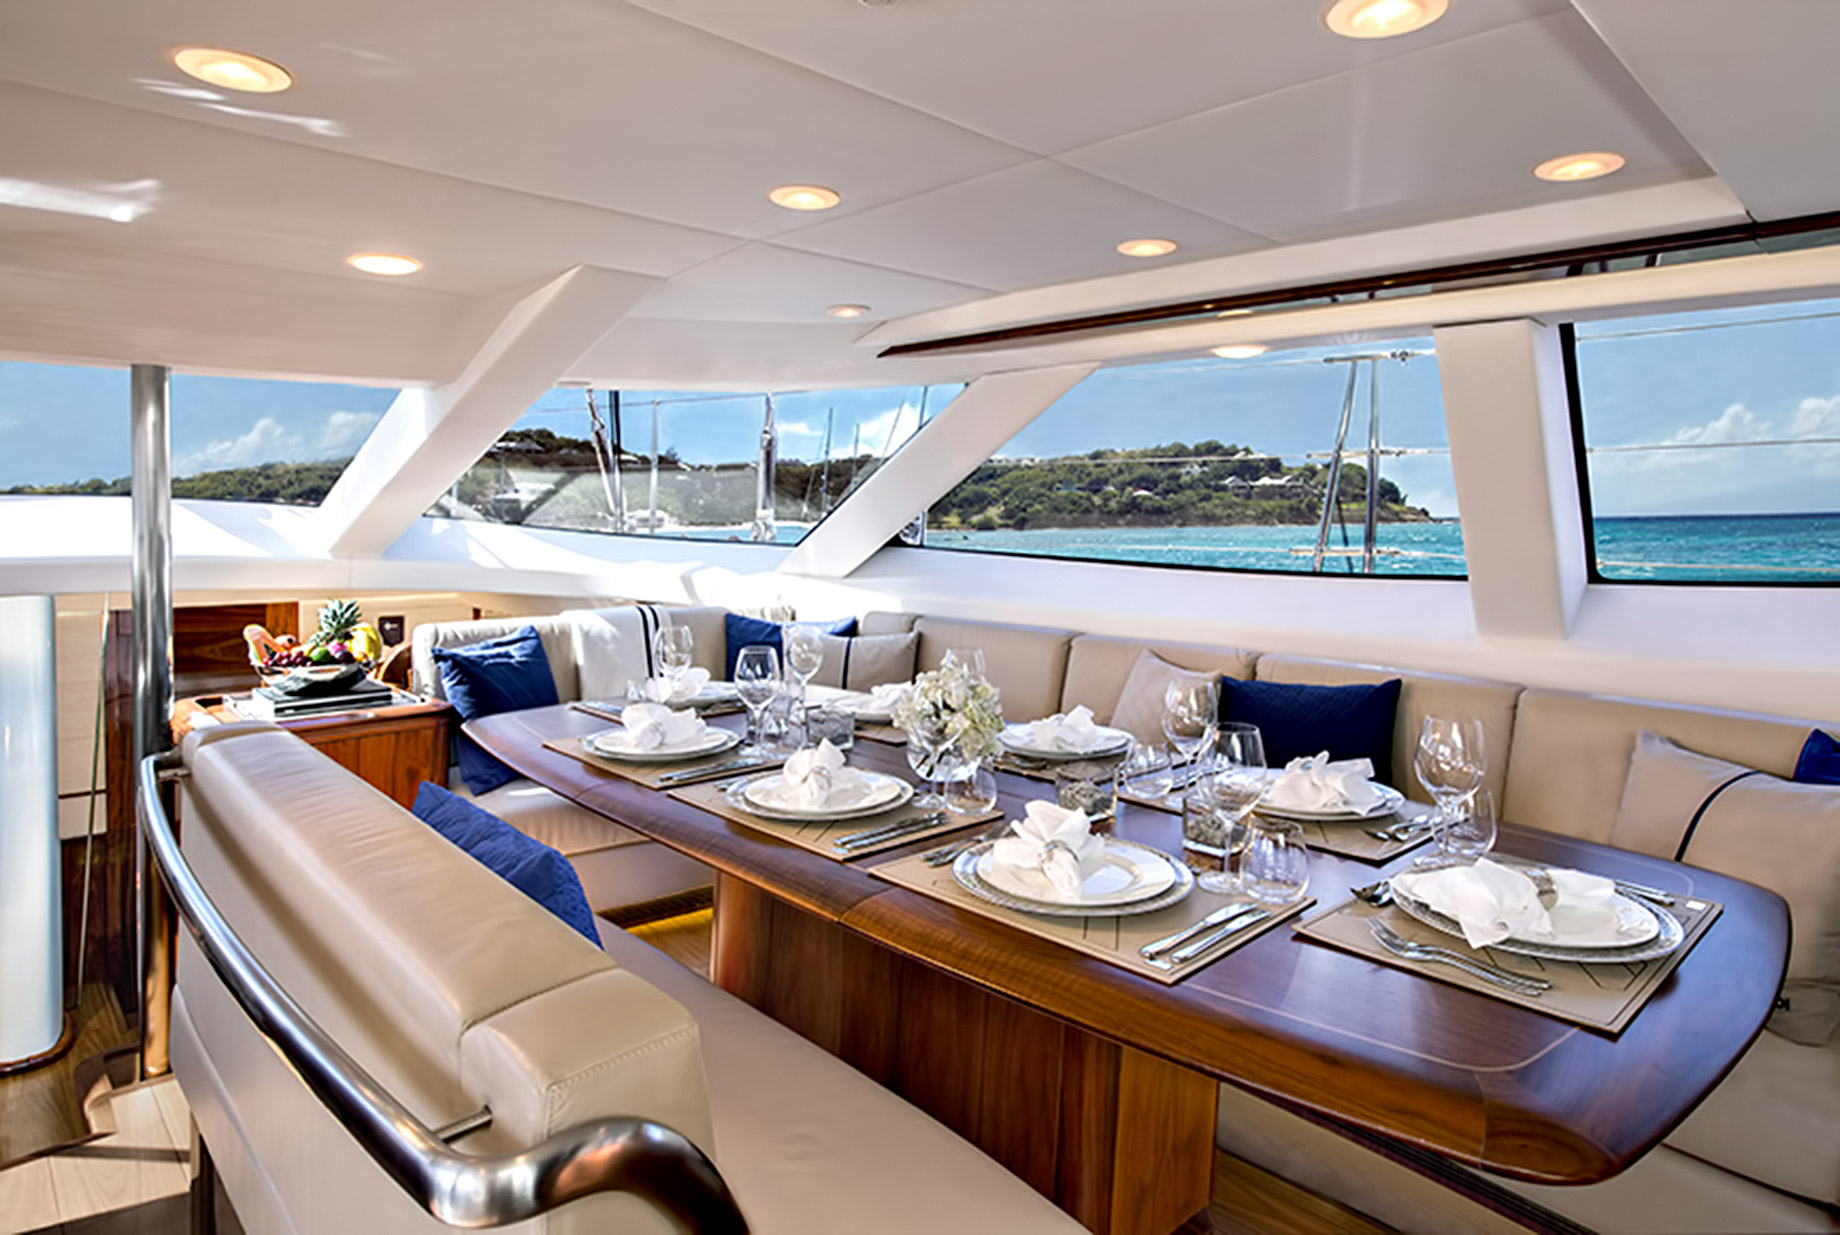 Luxurious Modern Interior - Oyster 100 Penelope - Step Inside A Luxury British Sailing Yacht